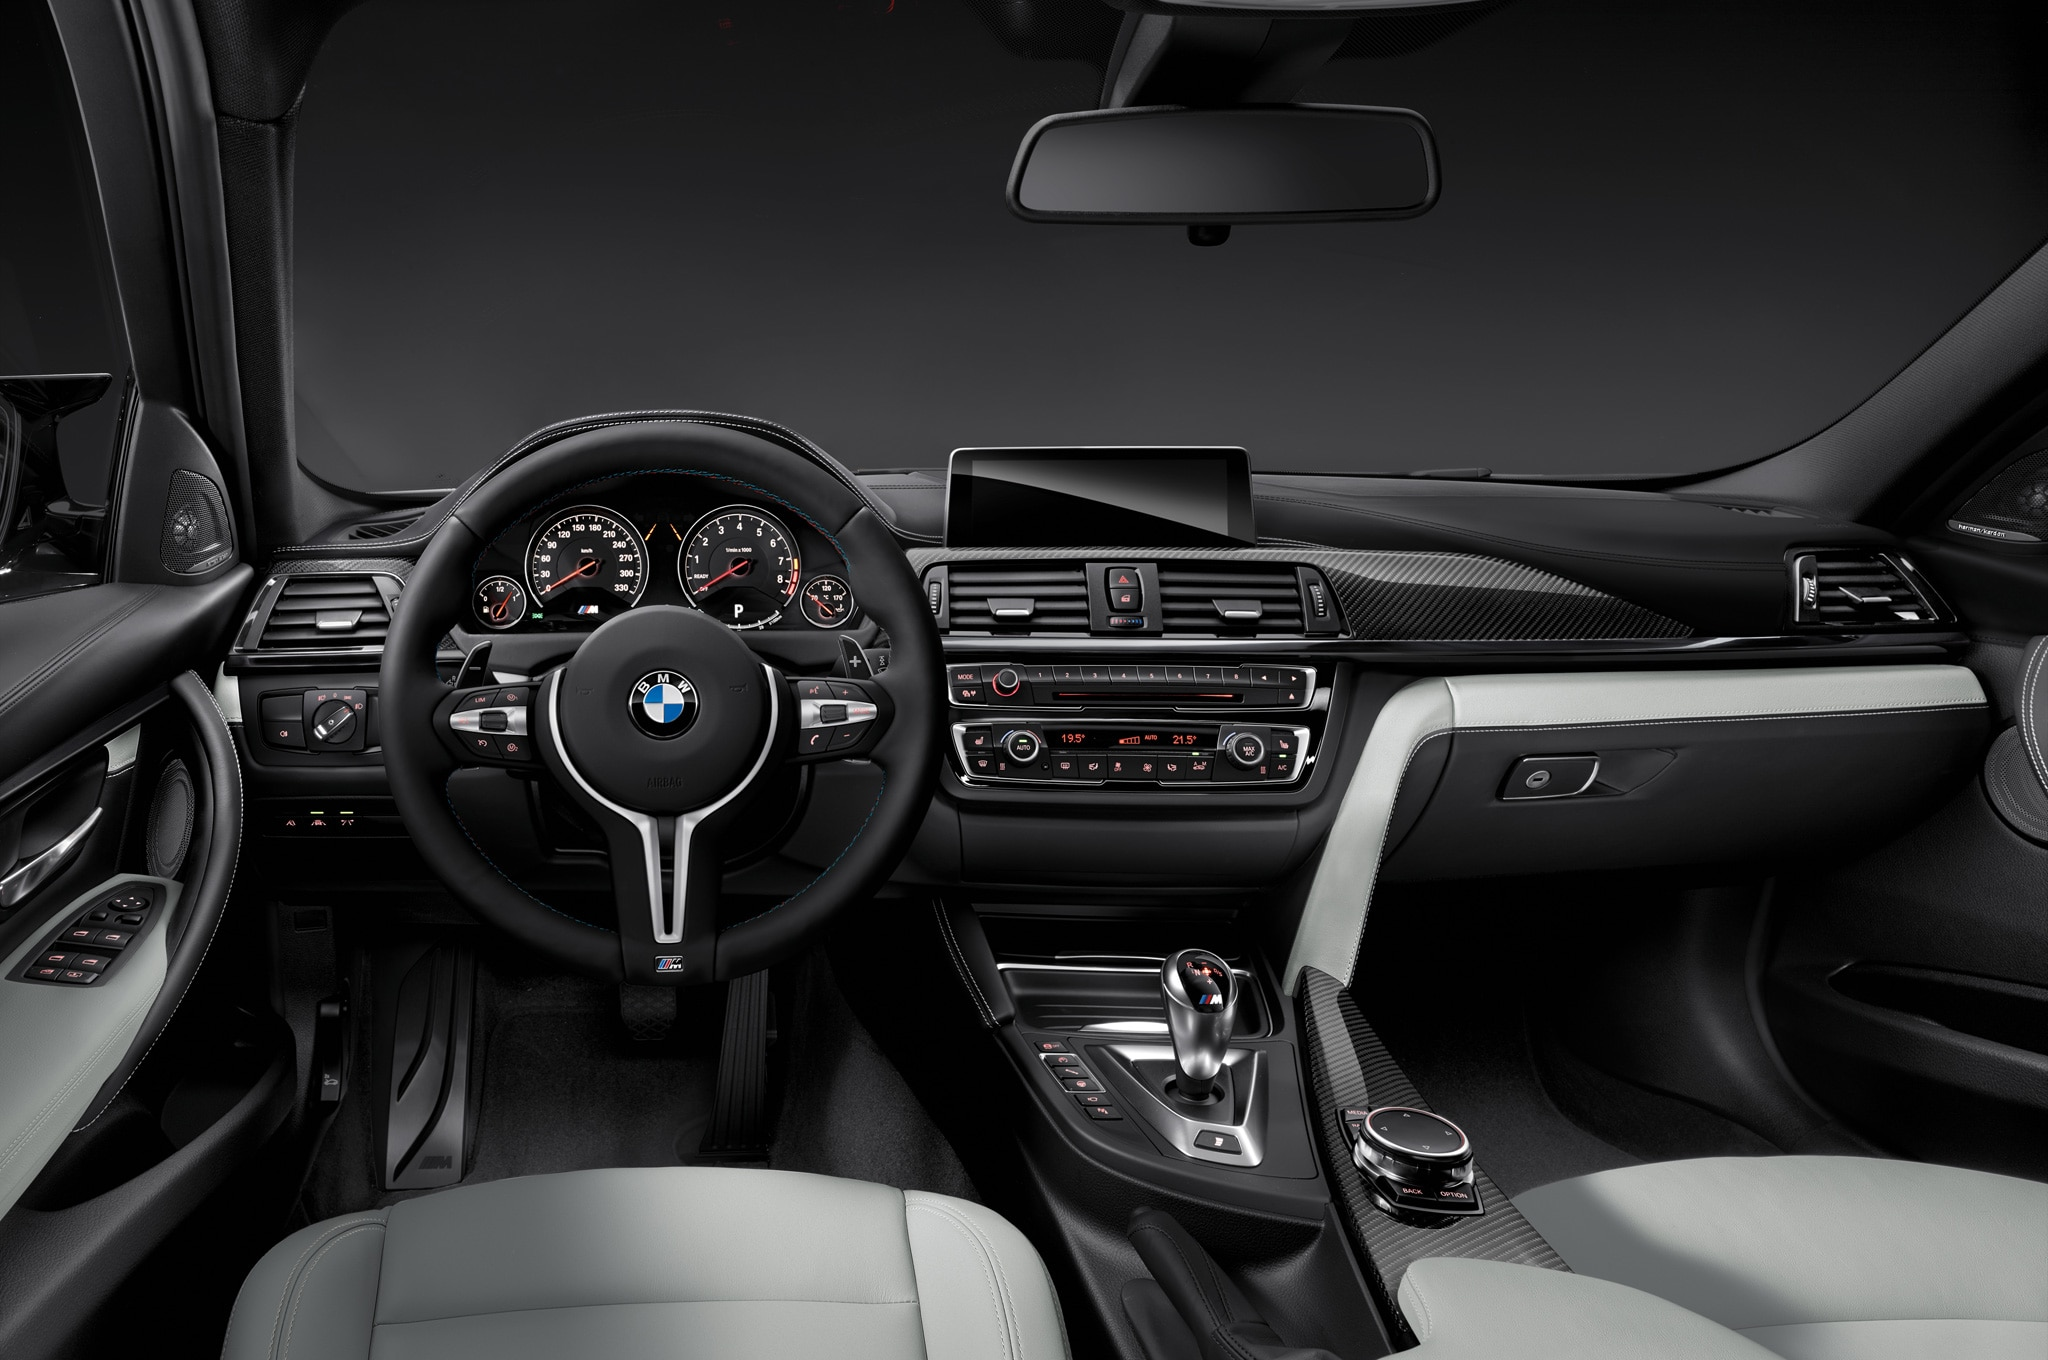 BMW M M Pricing Guides Announced Automobile Magazine - 2015 bmw m3 sedan price